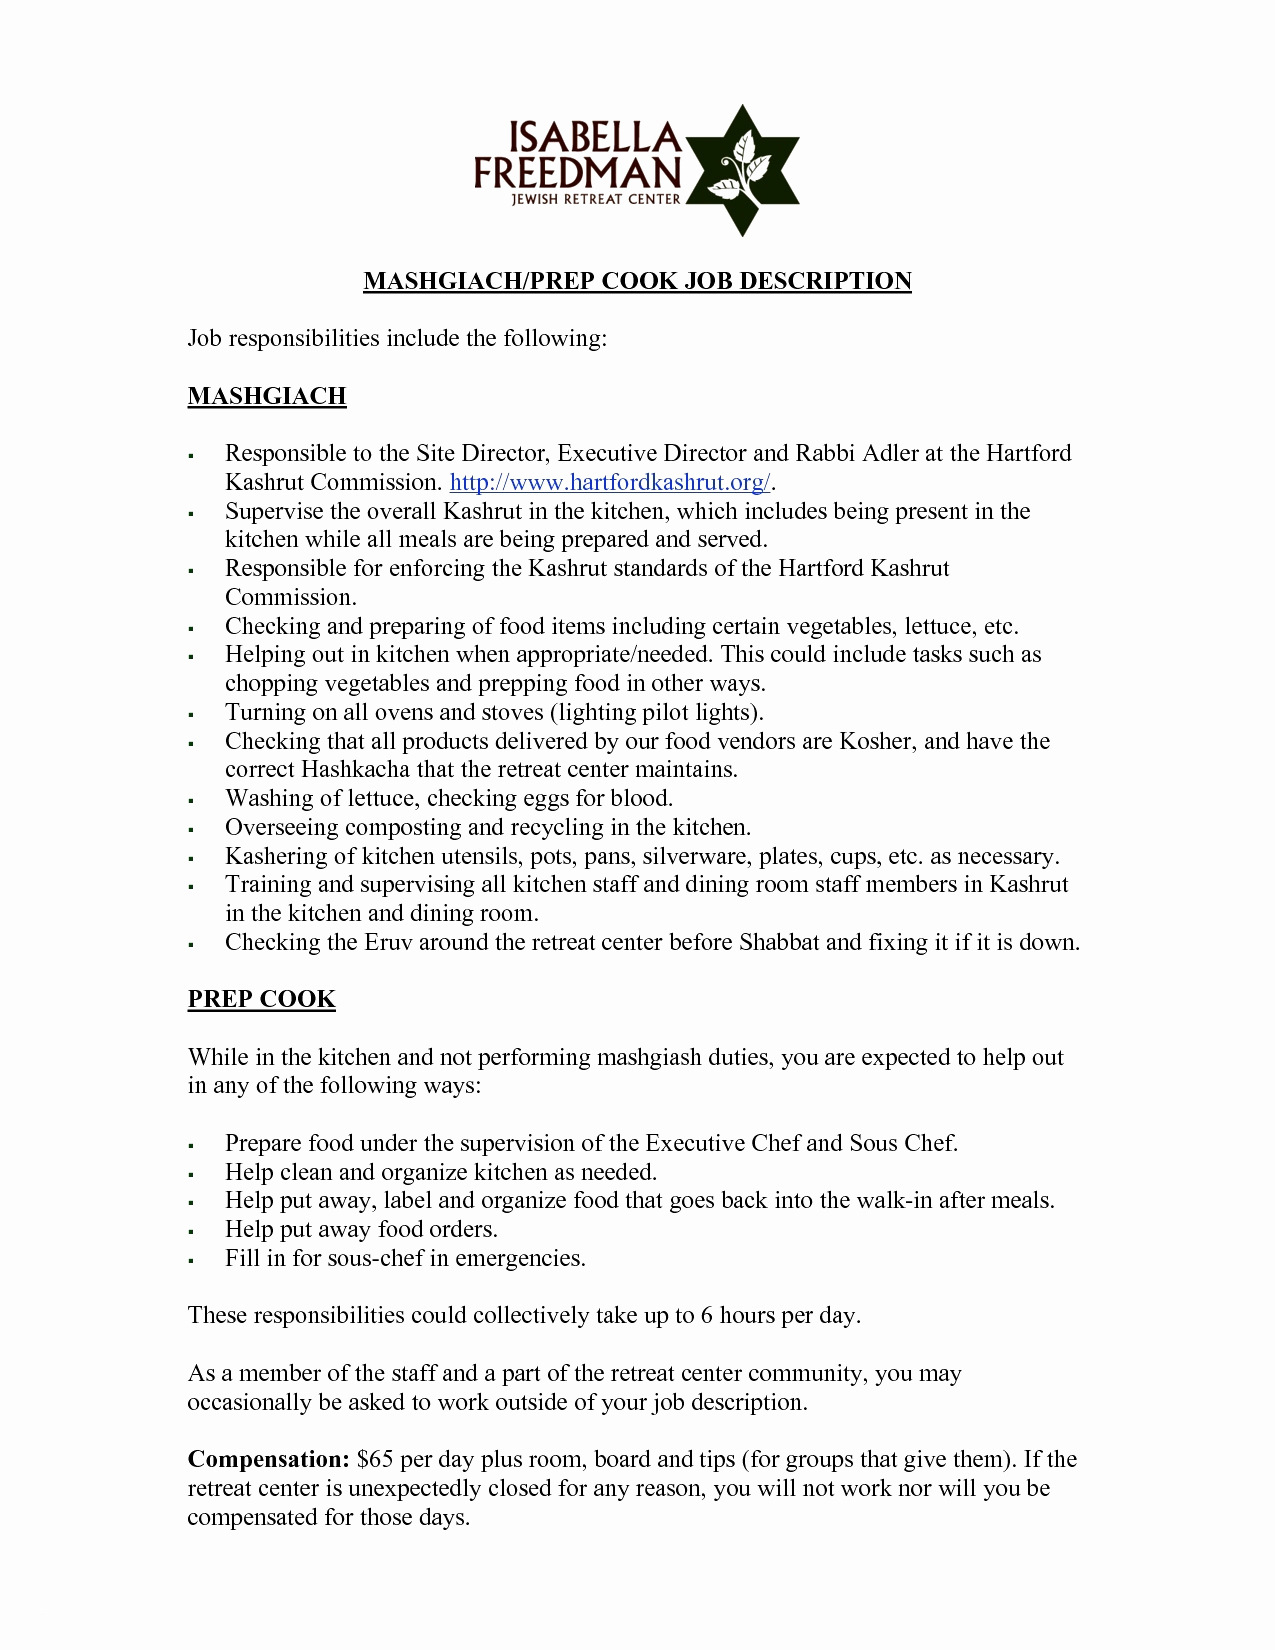 Basic Cover Letter Template - Basic Resume Outline Unique Resume and Cover Letter Template Fresh